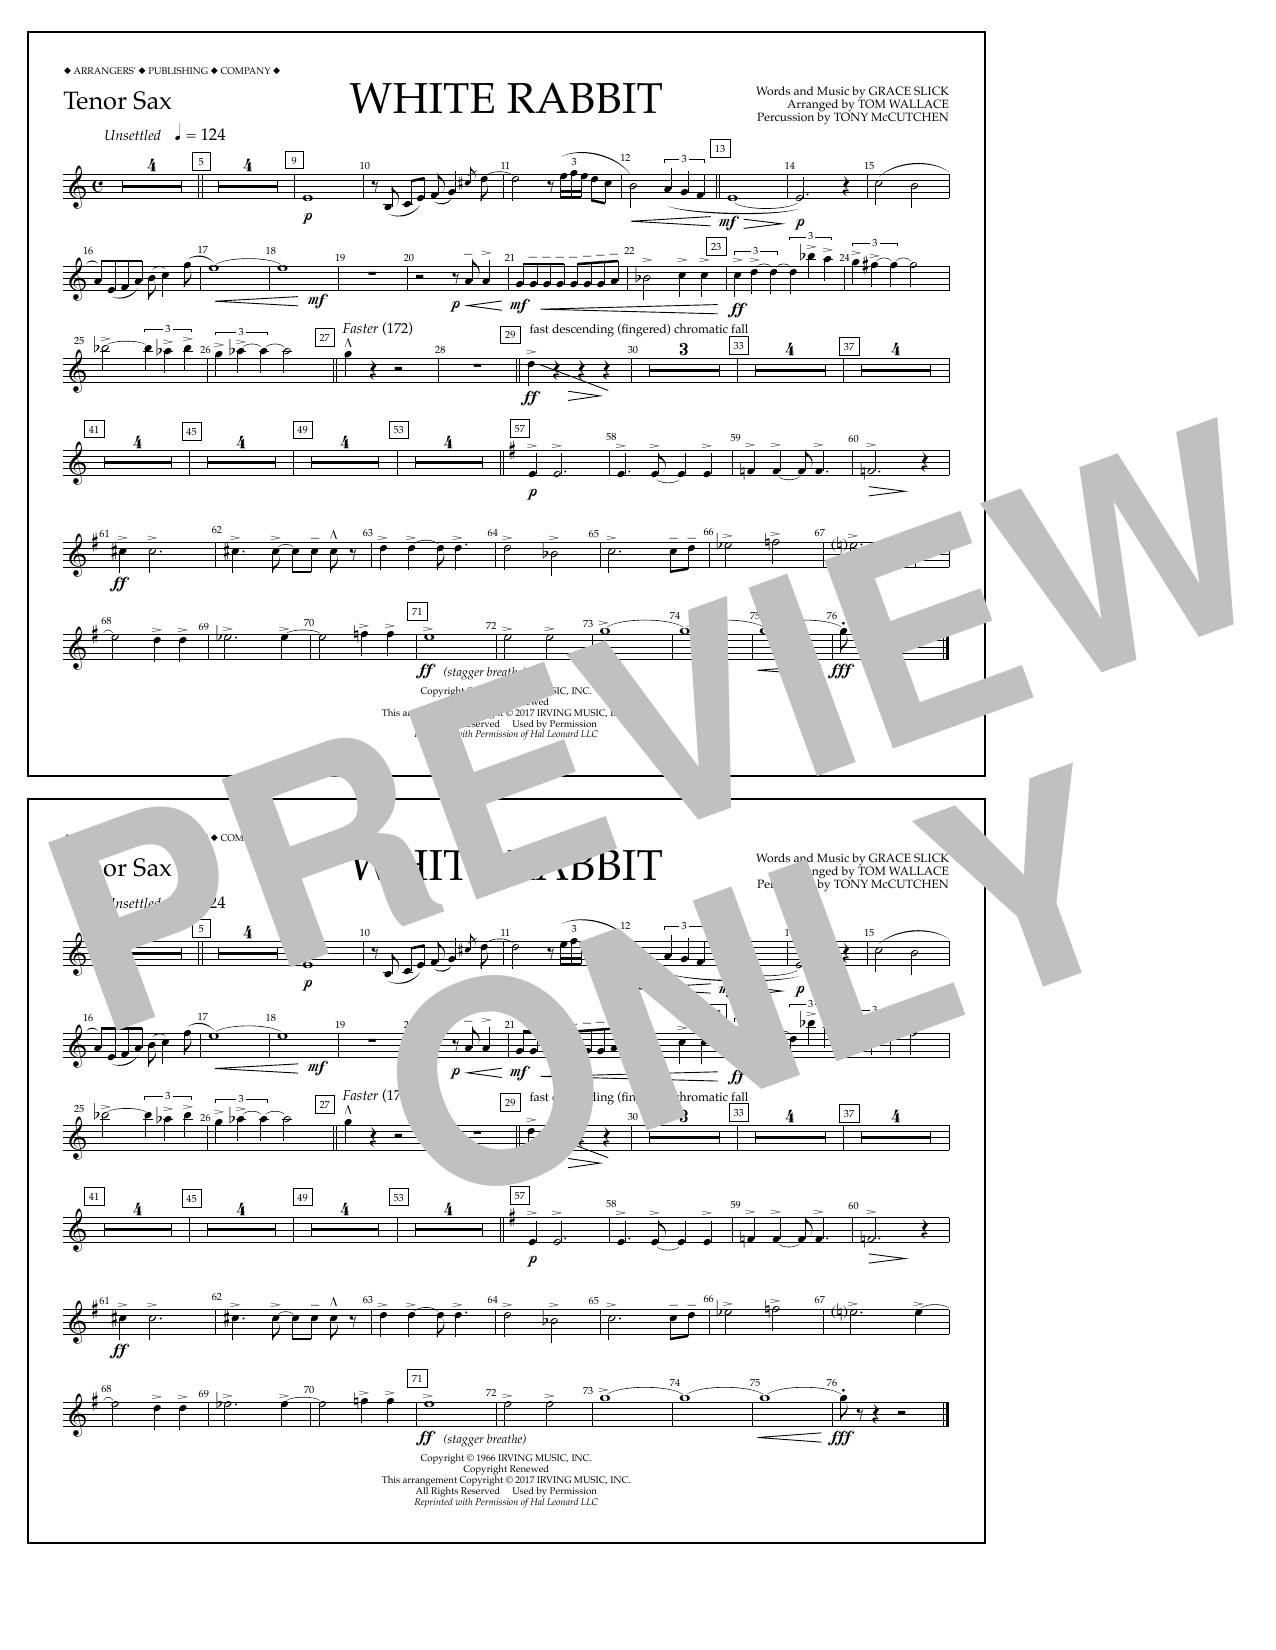 White Rabbit - Tenor Sax Sheet Music